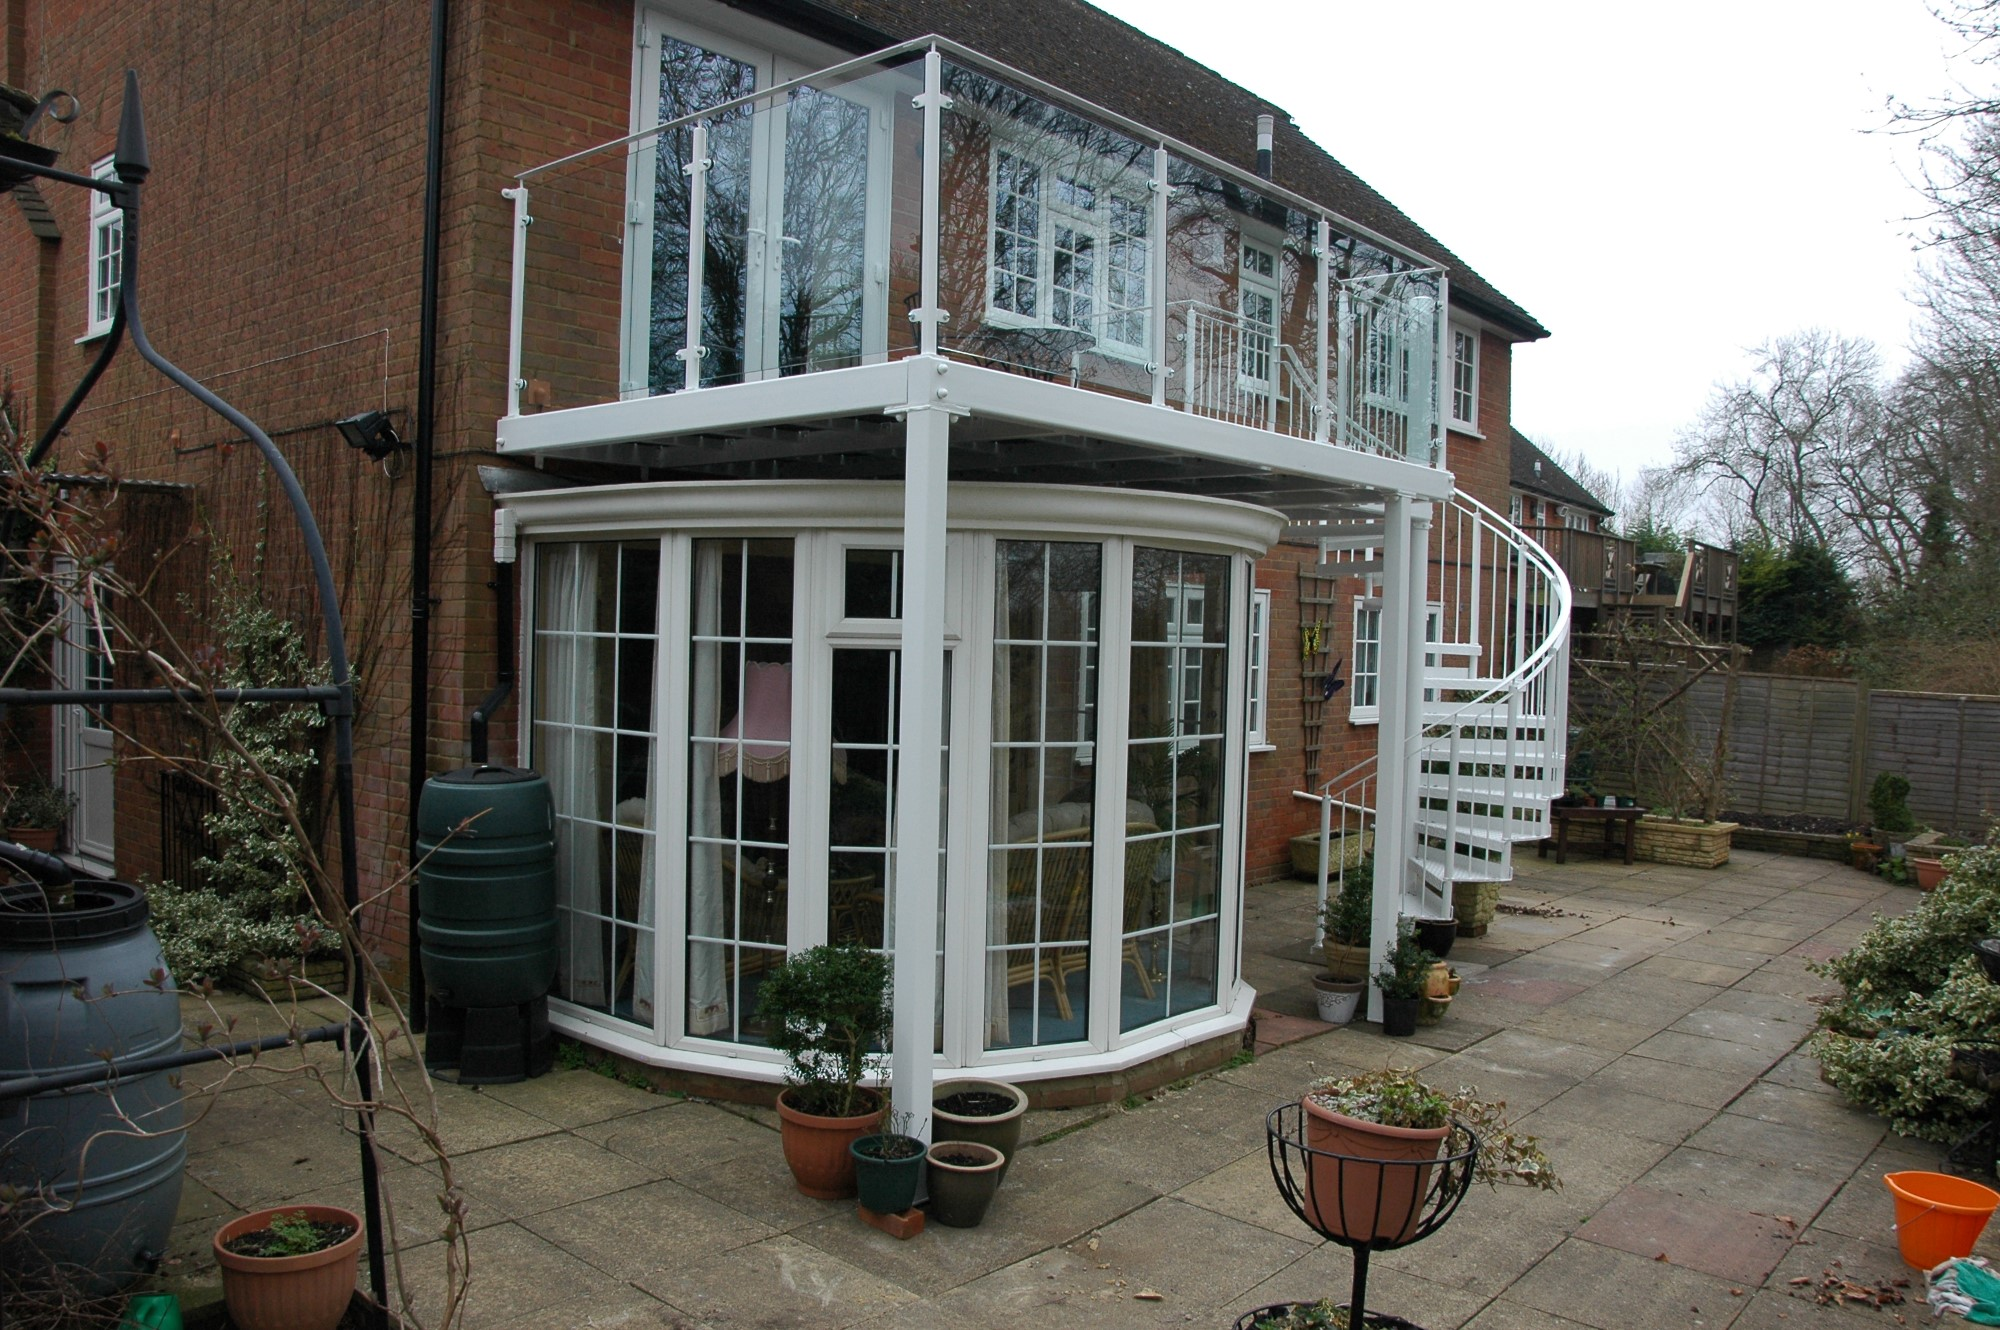 Spiral Staircase, external spiral staircase, Steel spiral staircase manufactured by Bradfabs